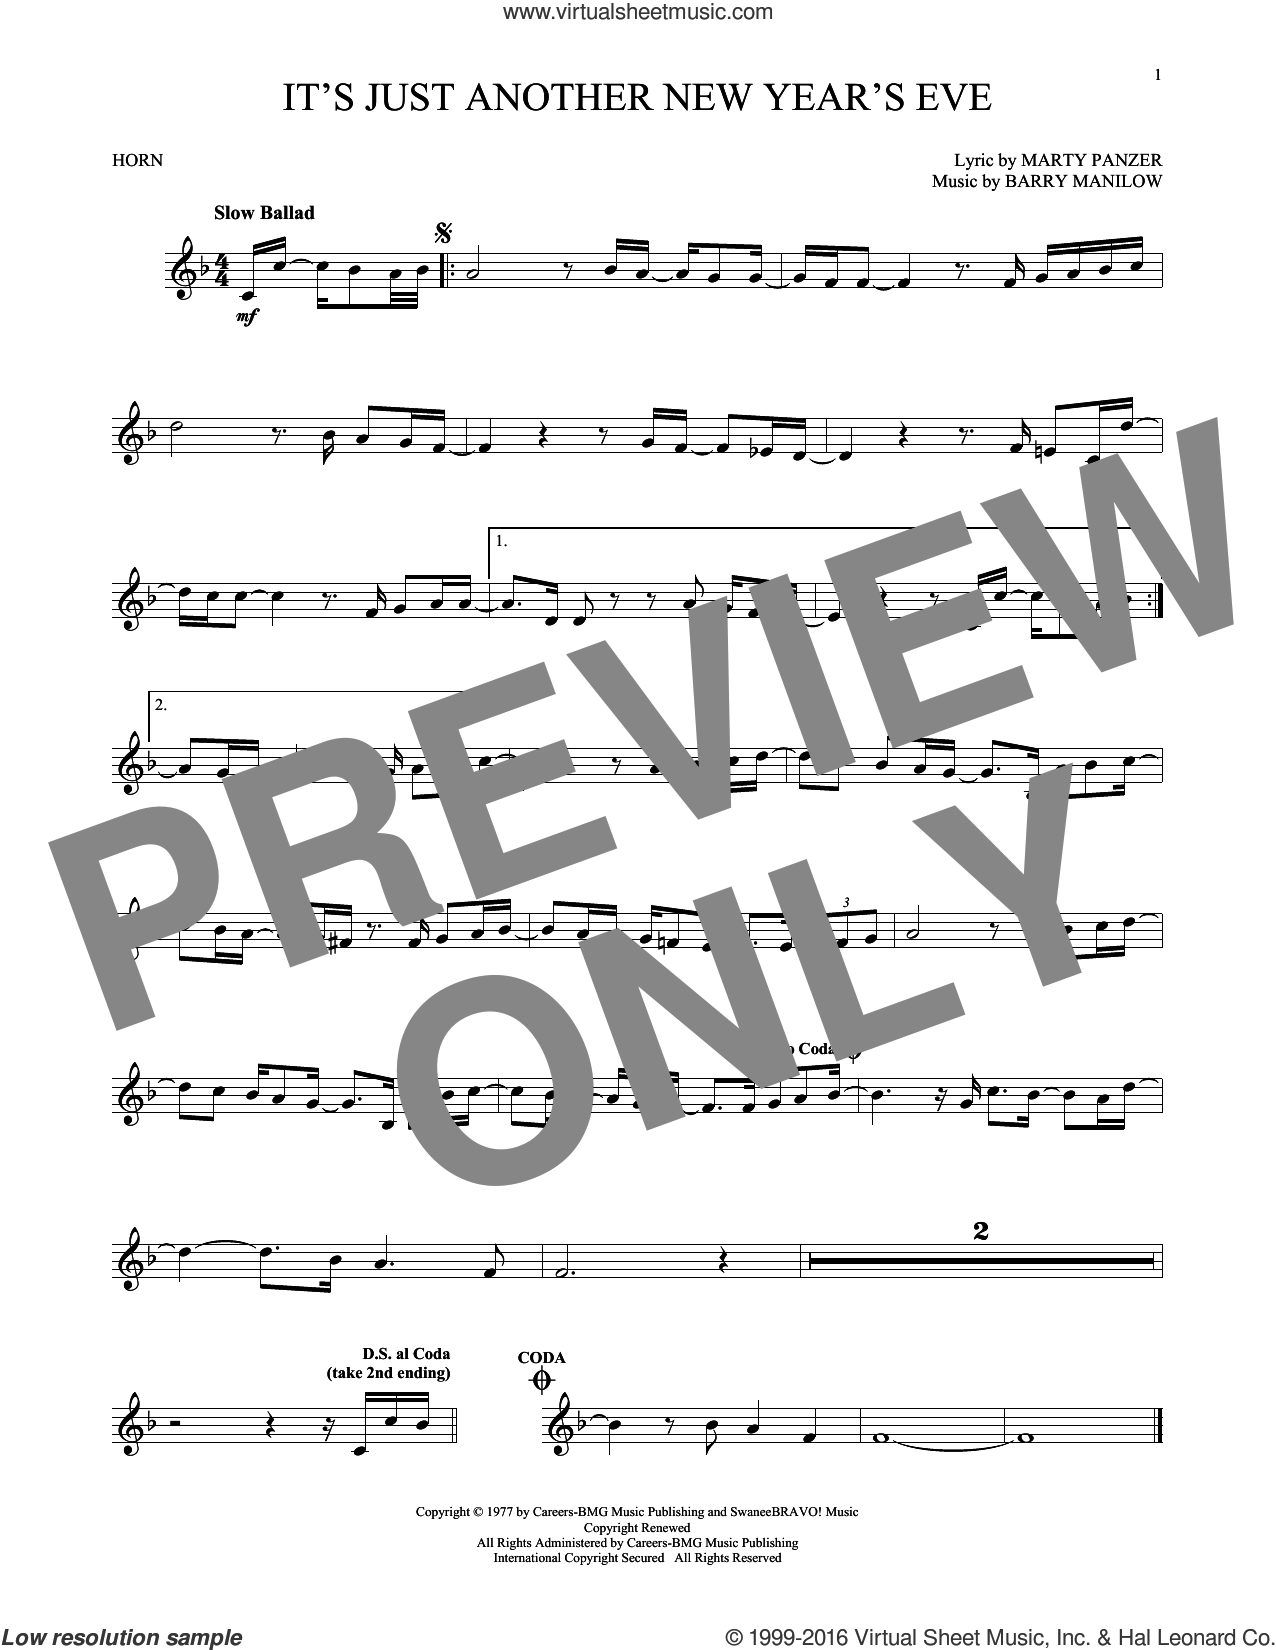 It's Just Another New Year's Eve sheet music for horn solo by Barry Manilow and Marty Panzer, intermediate skill level